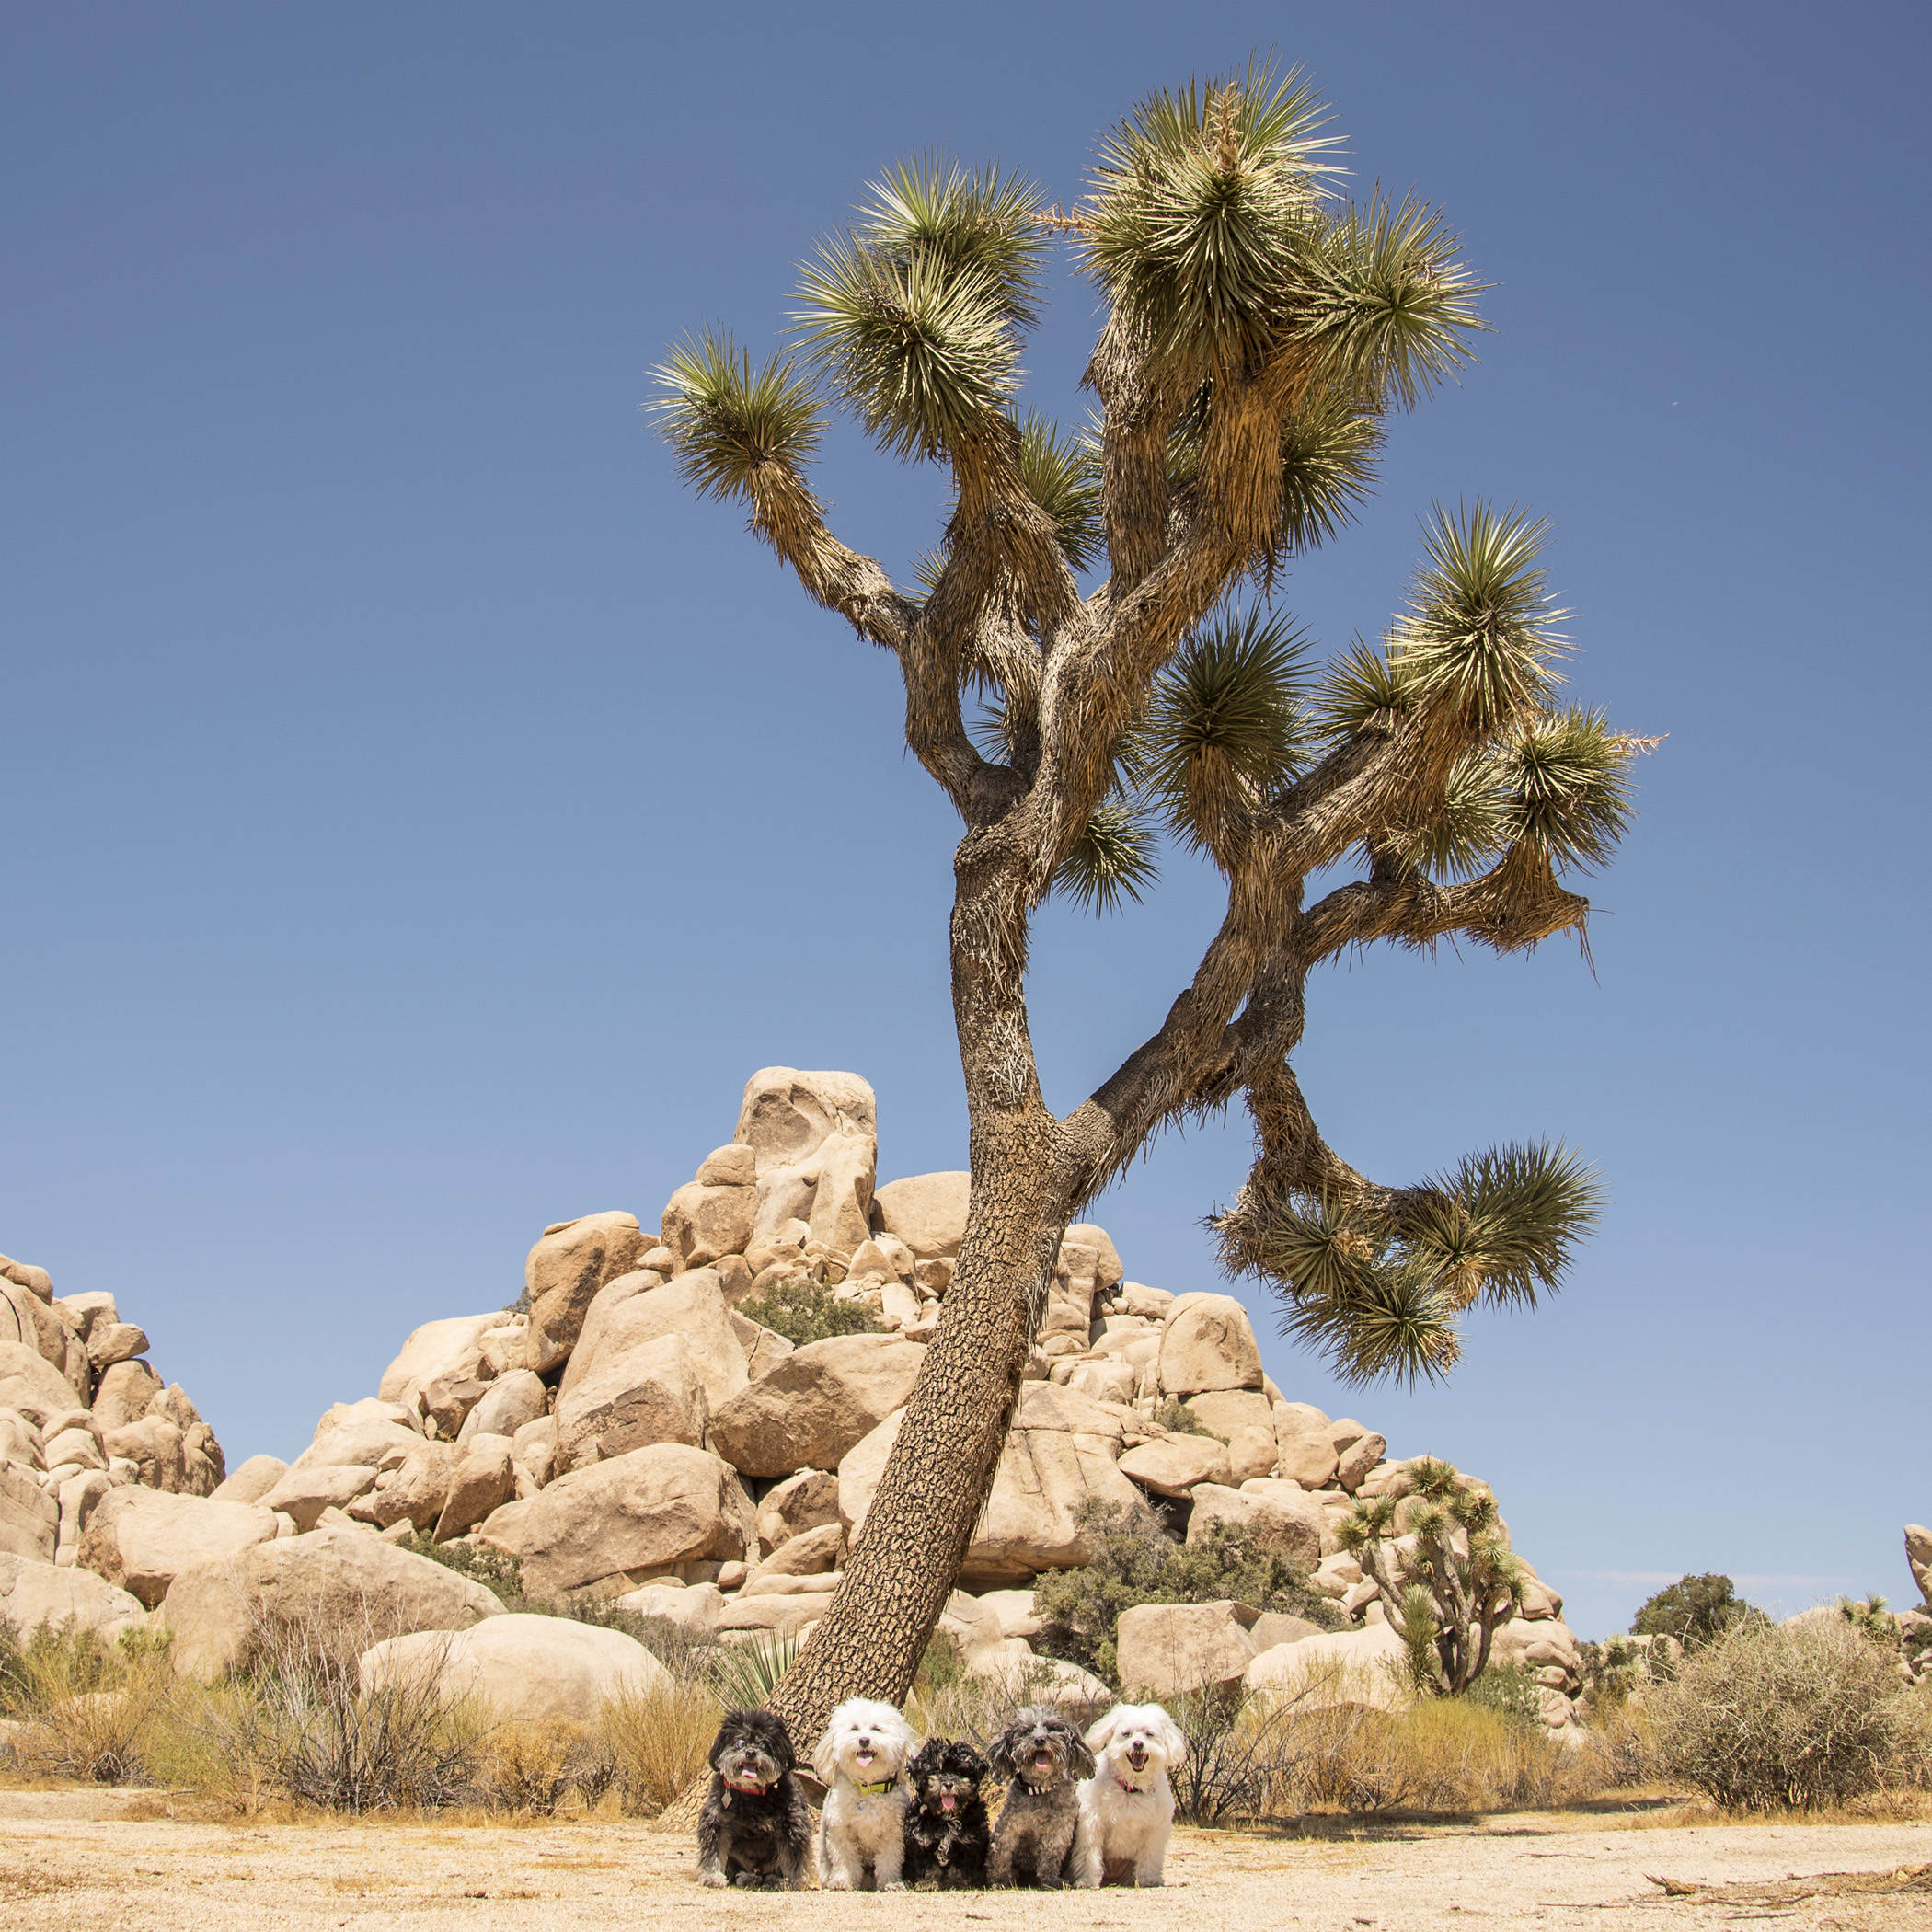 Yep,Joshua Tree National Park is beautiful, but we've seen enough and we're hot…let's get to the beach!